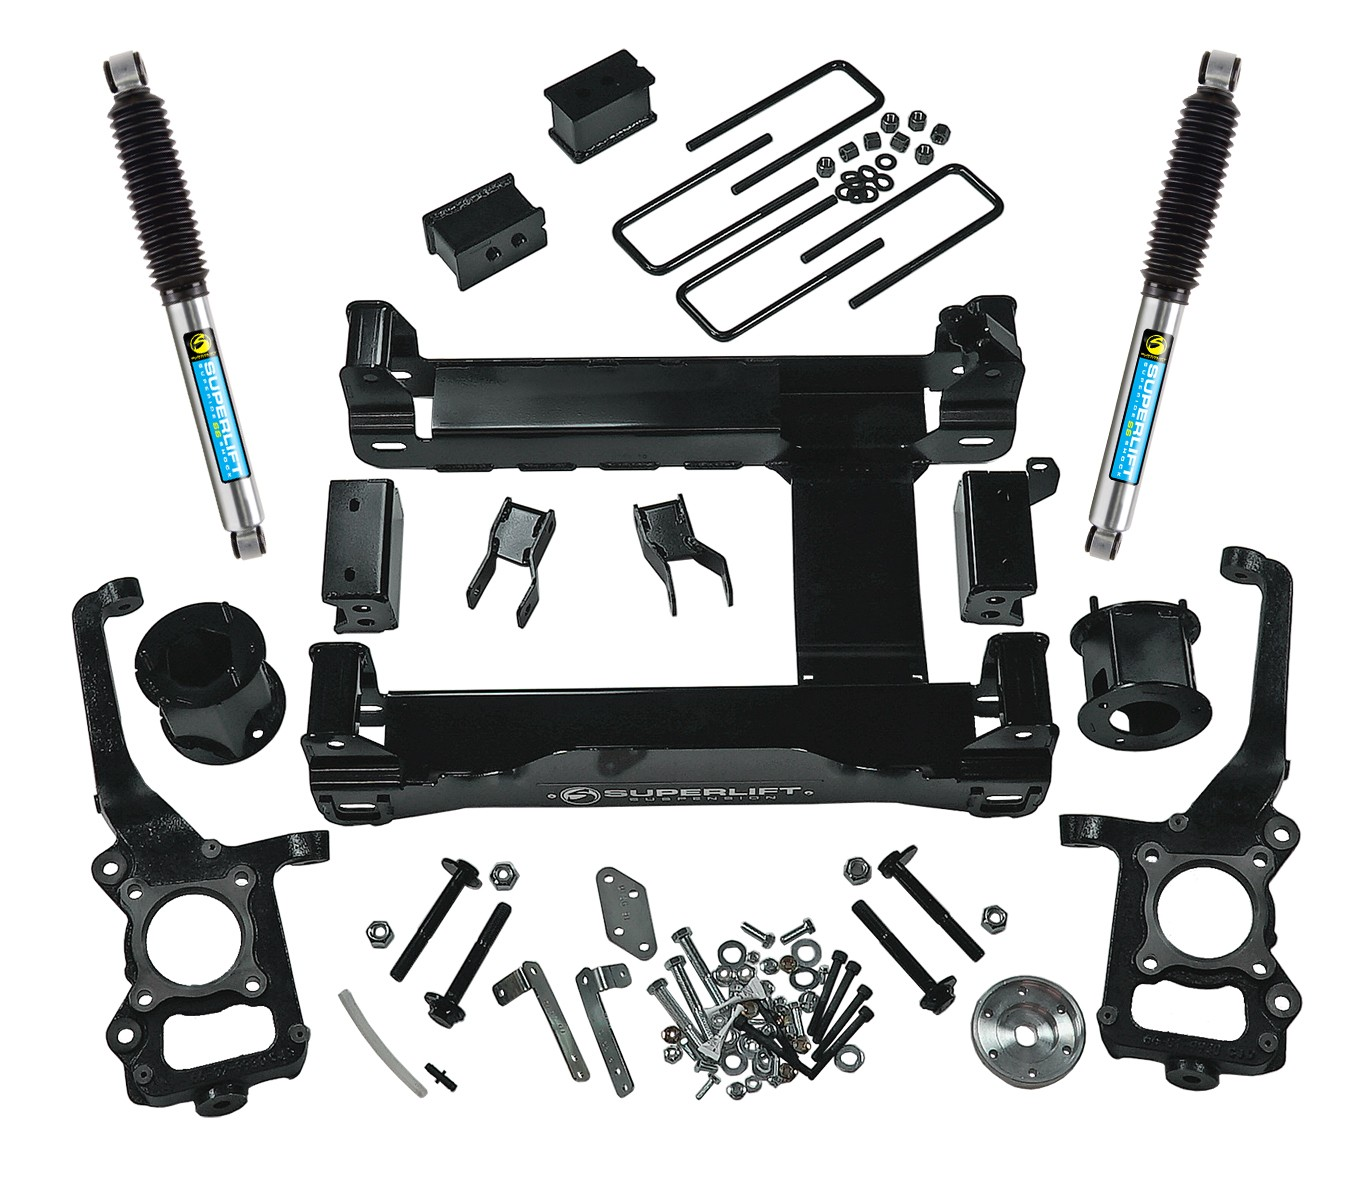 2015 Ford F-150 BoxLink System Detailed - autoevolution